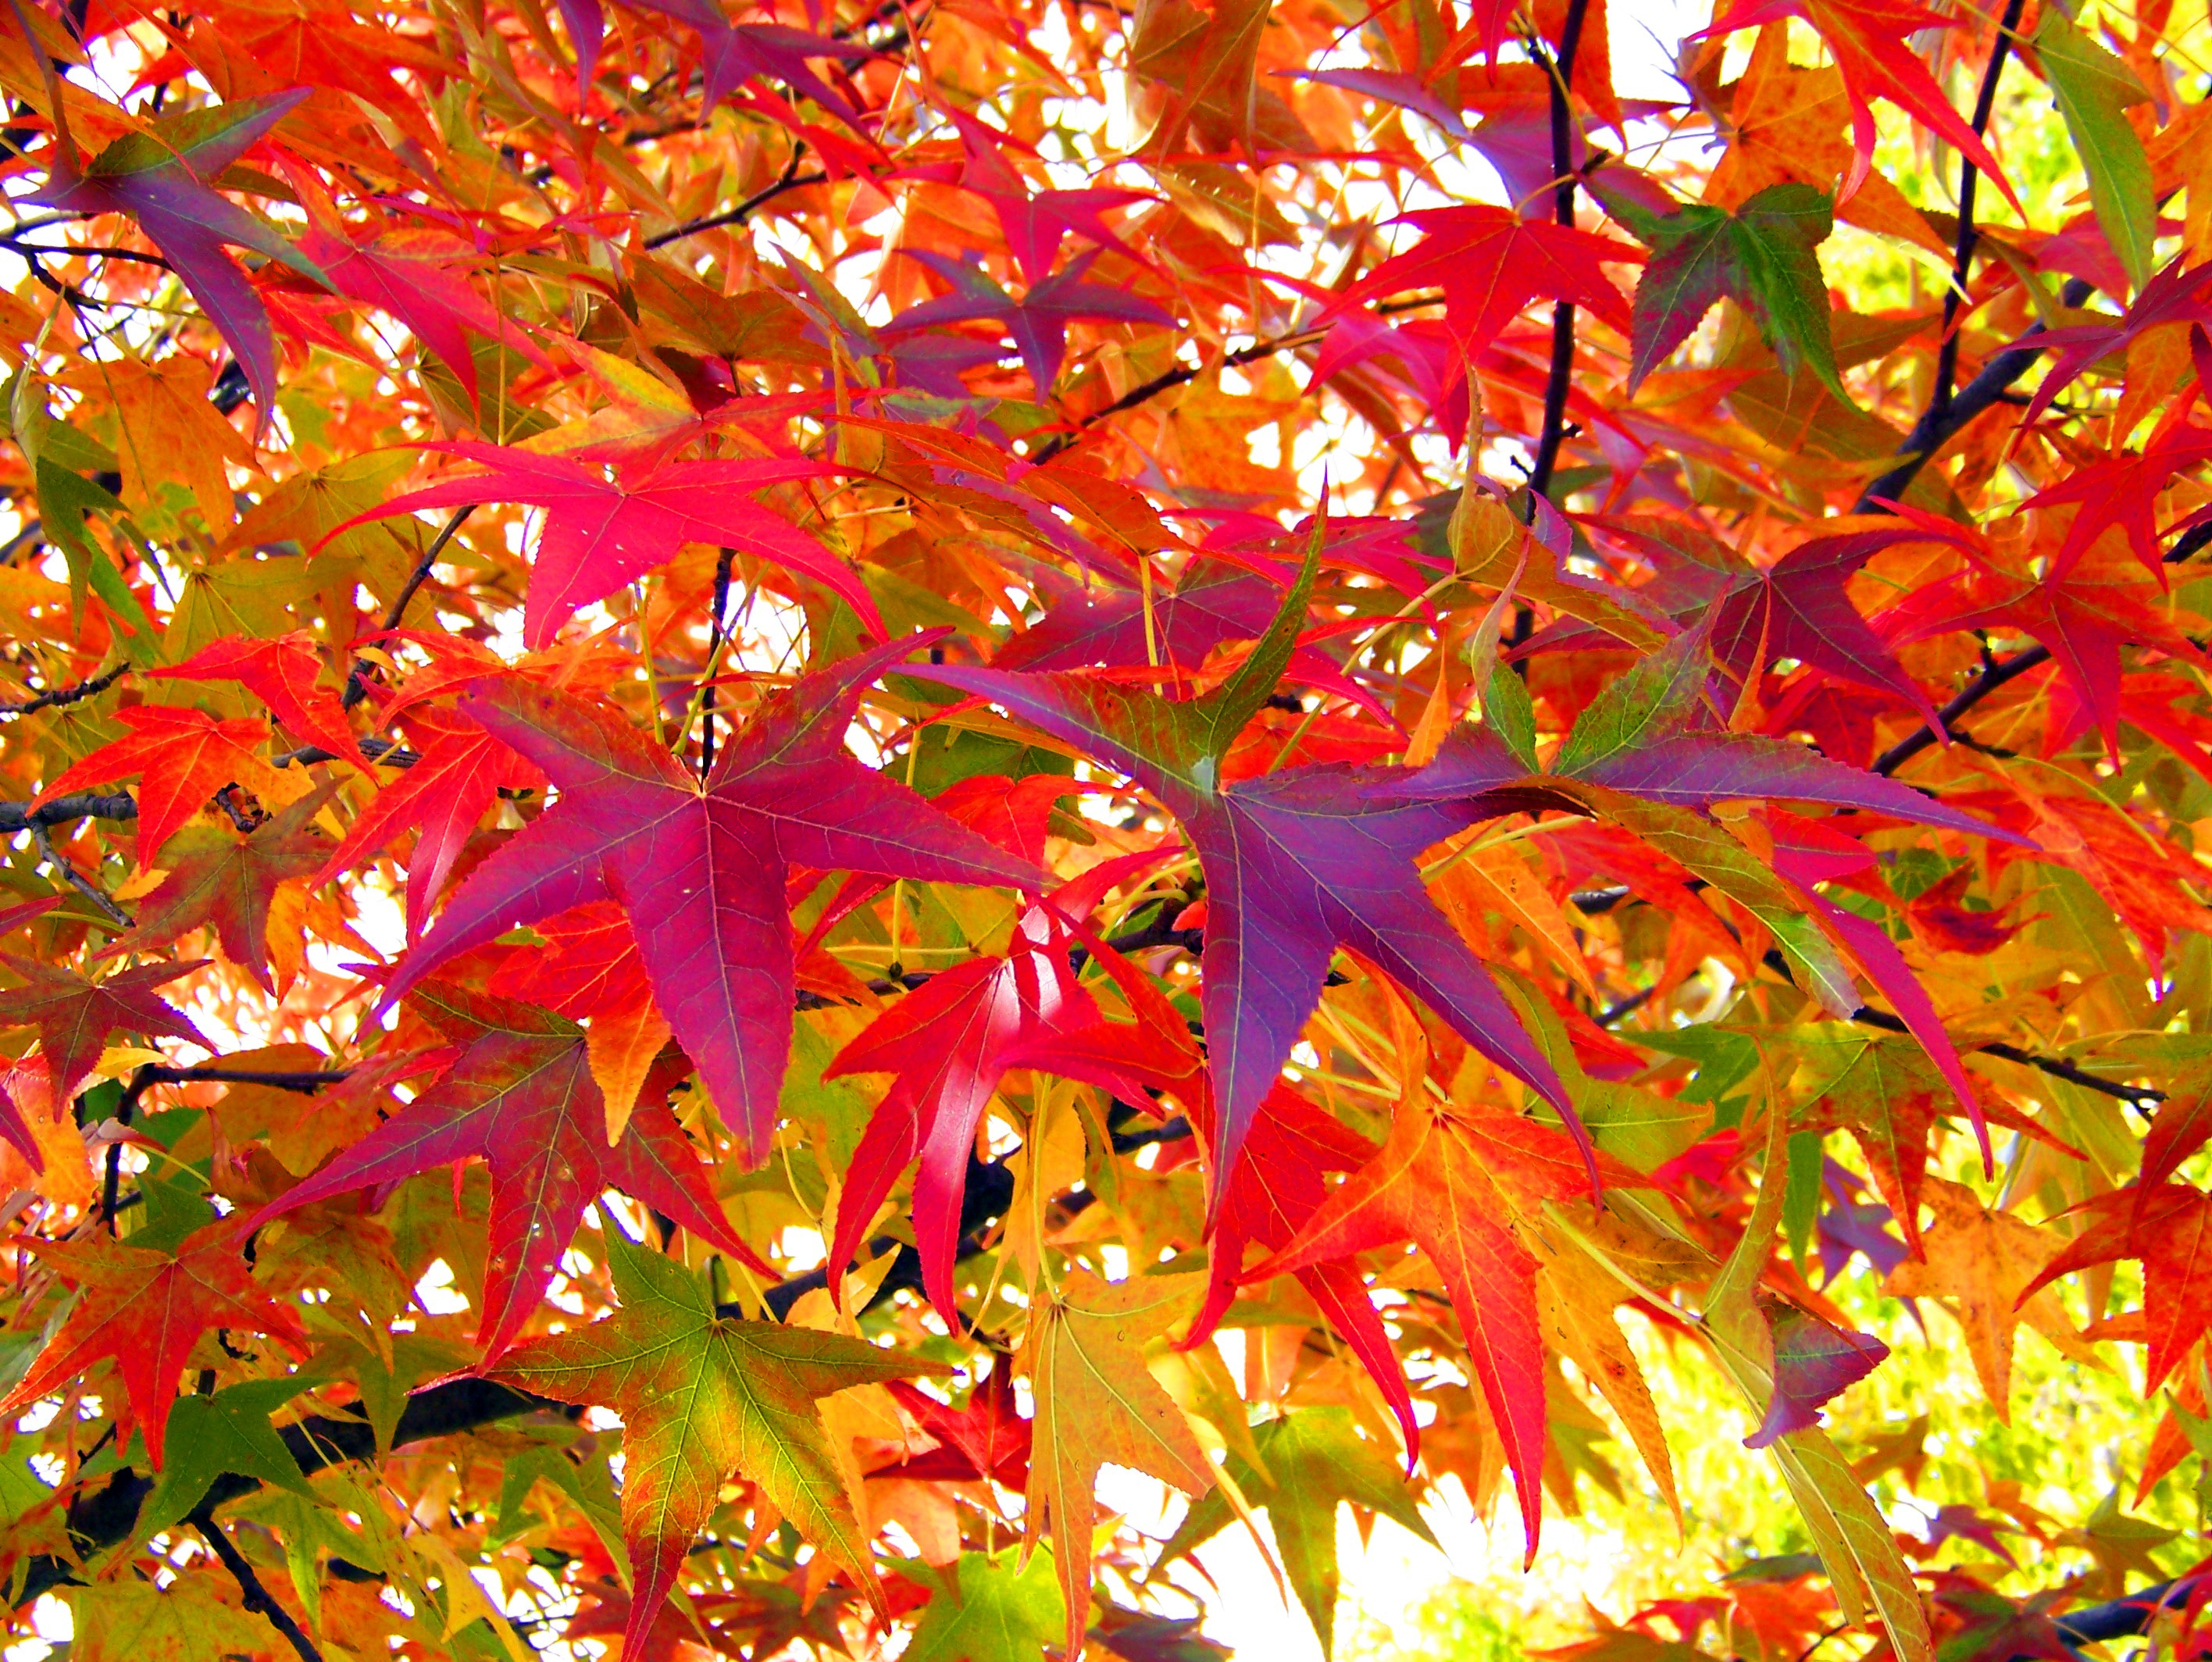 autumn trees colorful leaves - photo #11